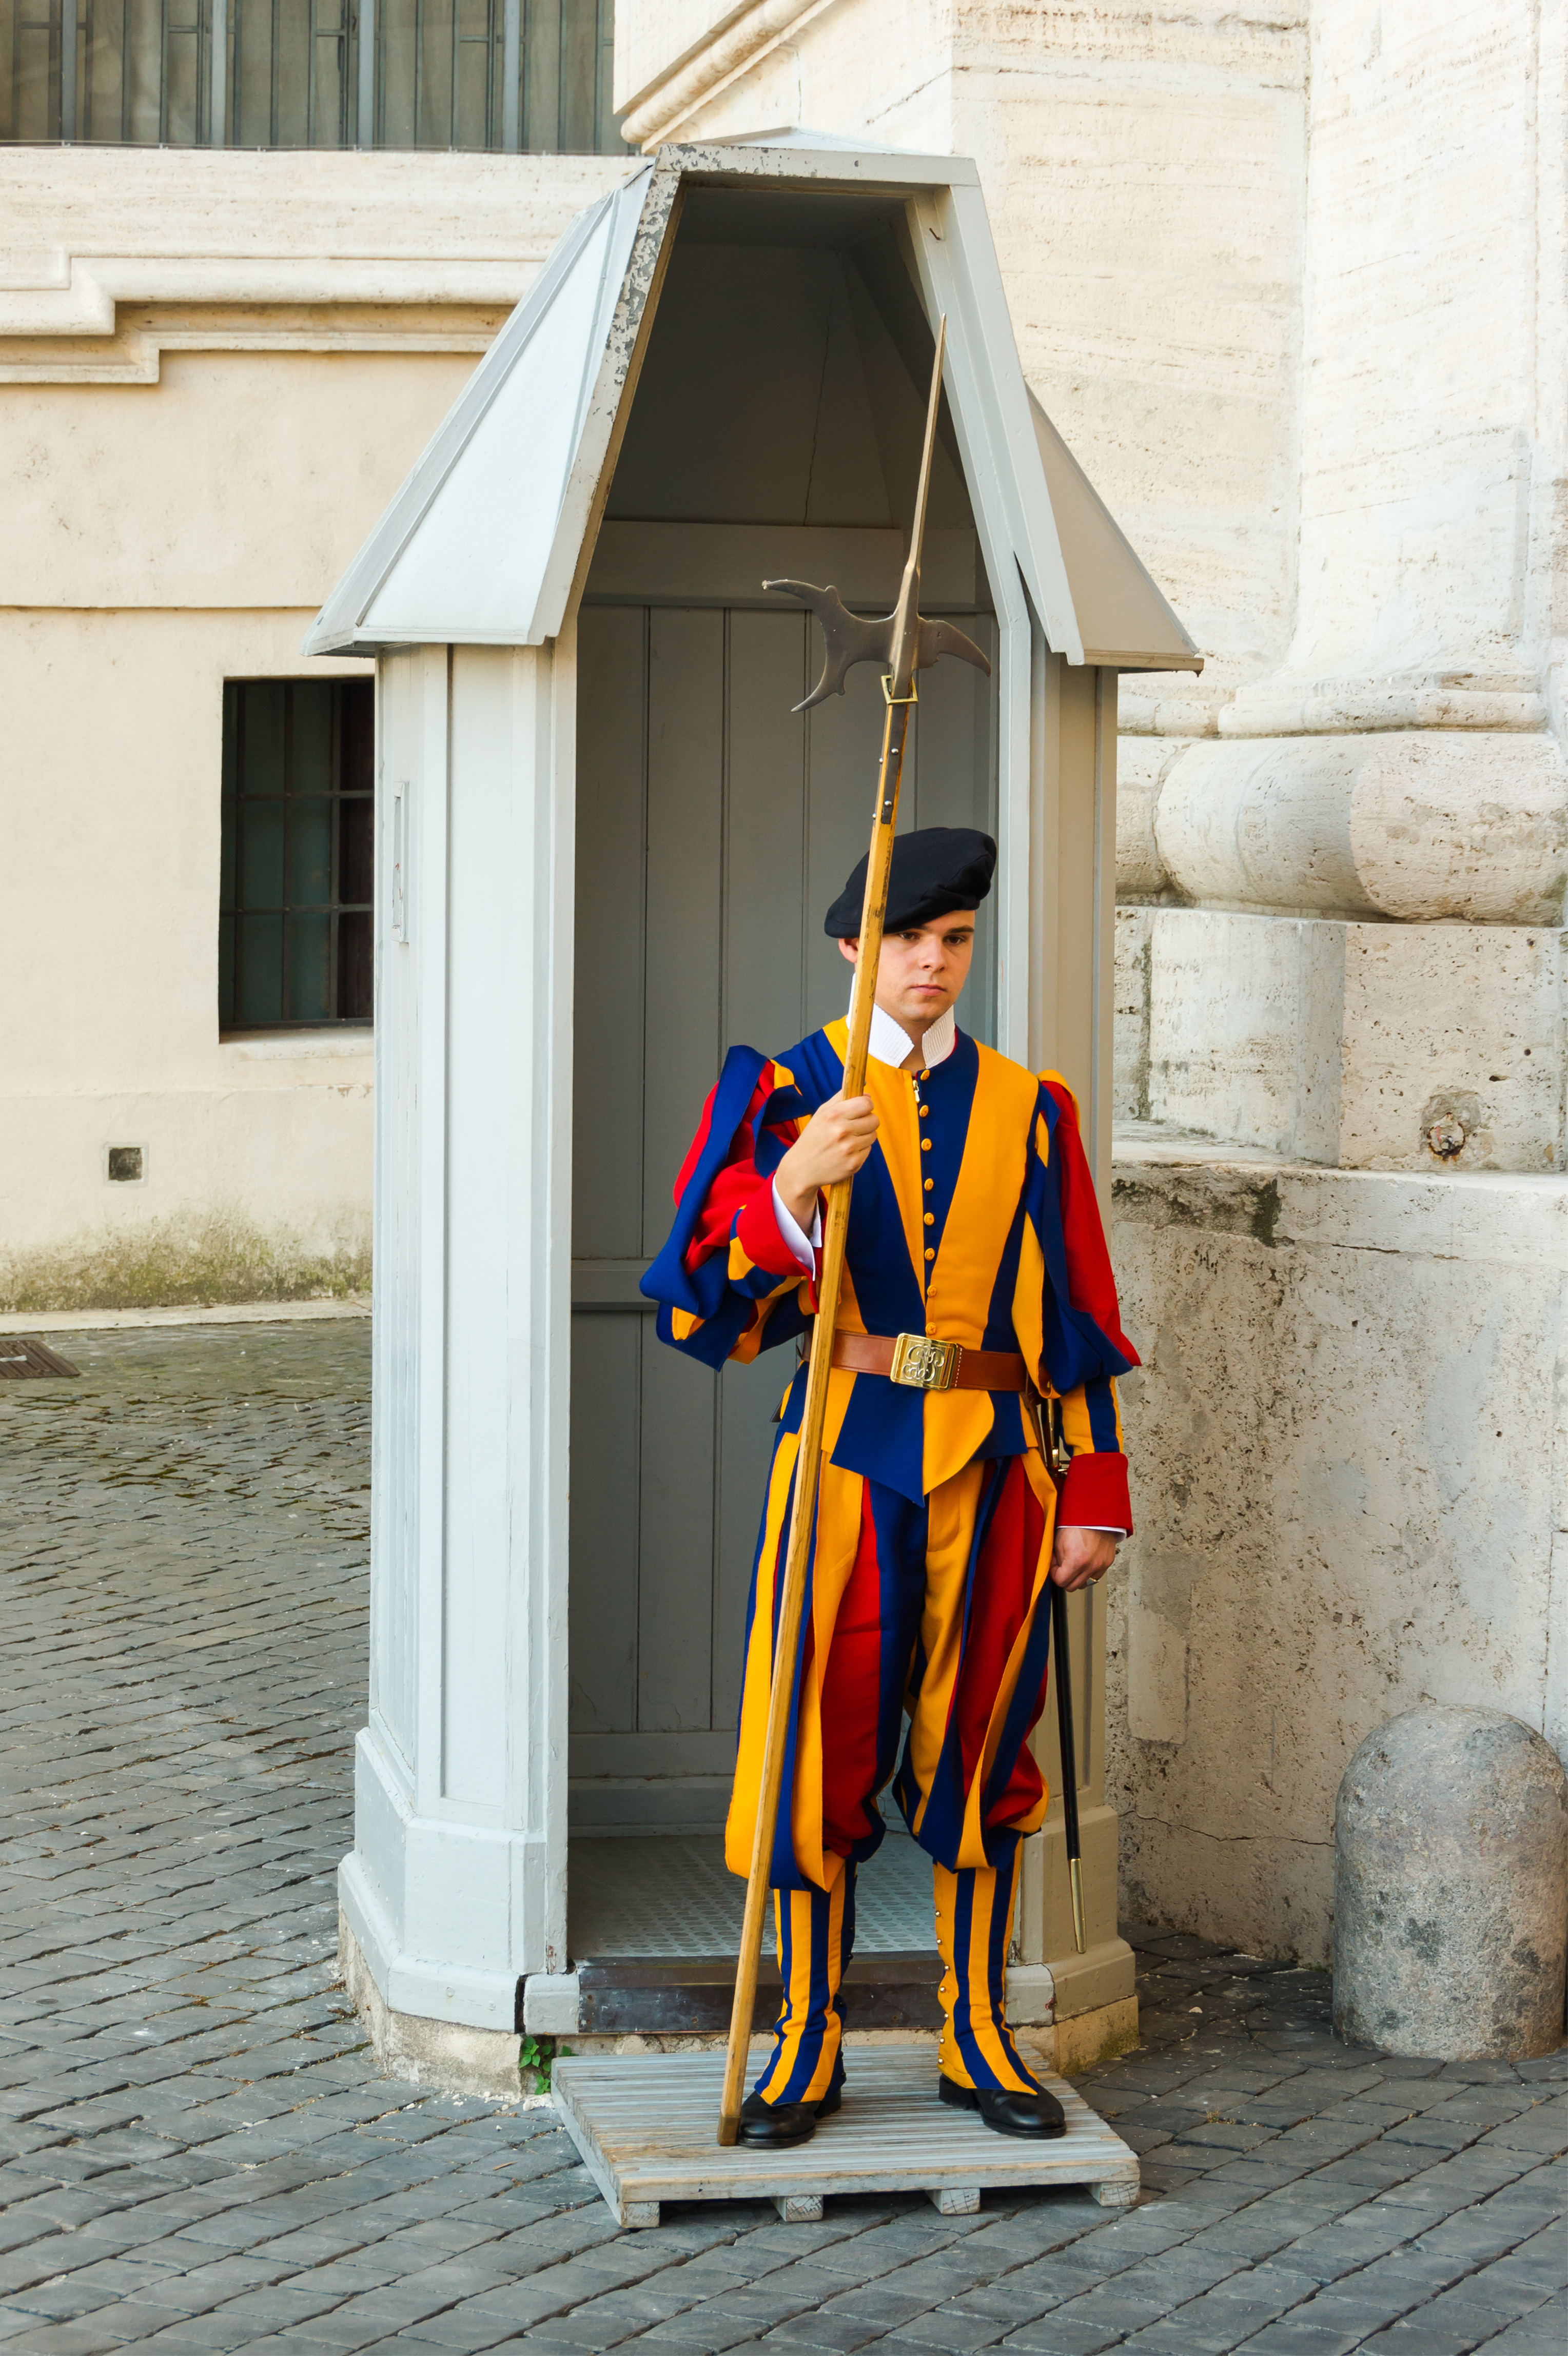 File Swiss guard Vatican City together with File Destination icon in a square further Cf386c595f4fc532da163588 further Watch besides Ttc Rhoensprudel Maberzell V Zugbruecke Grenzau. on 12 511